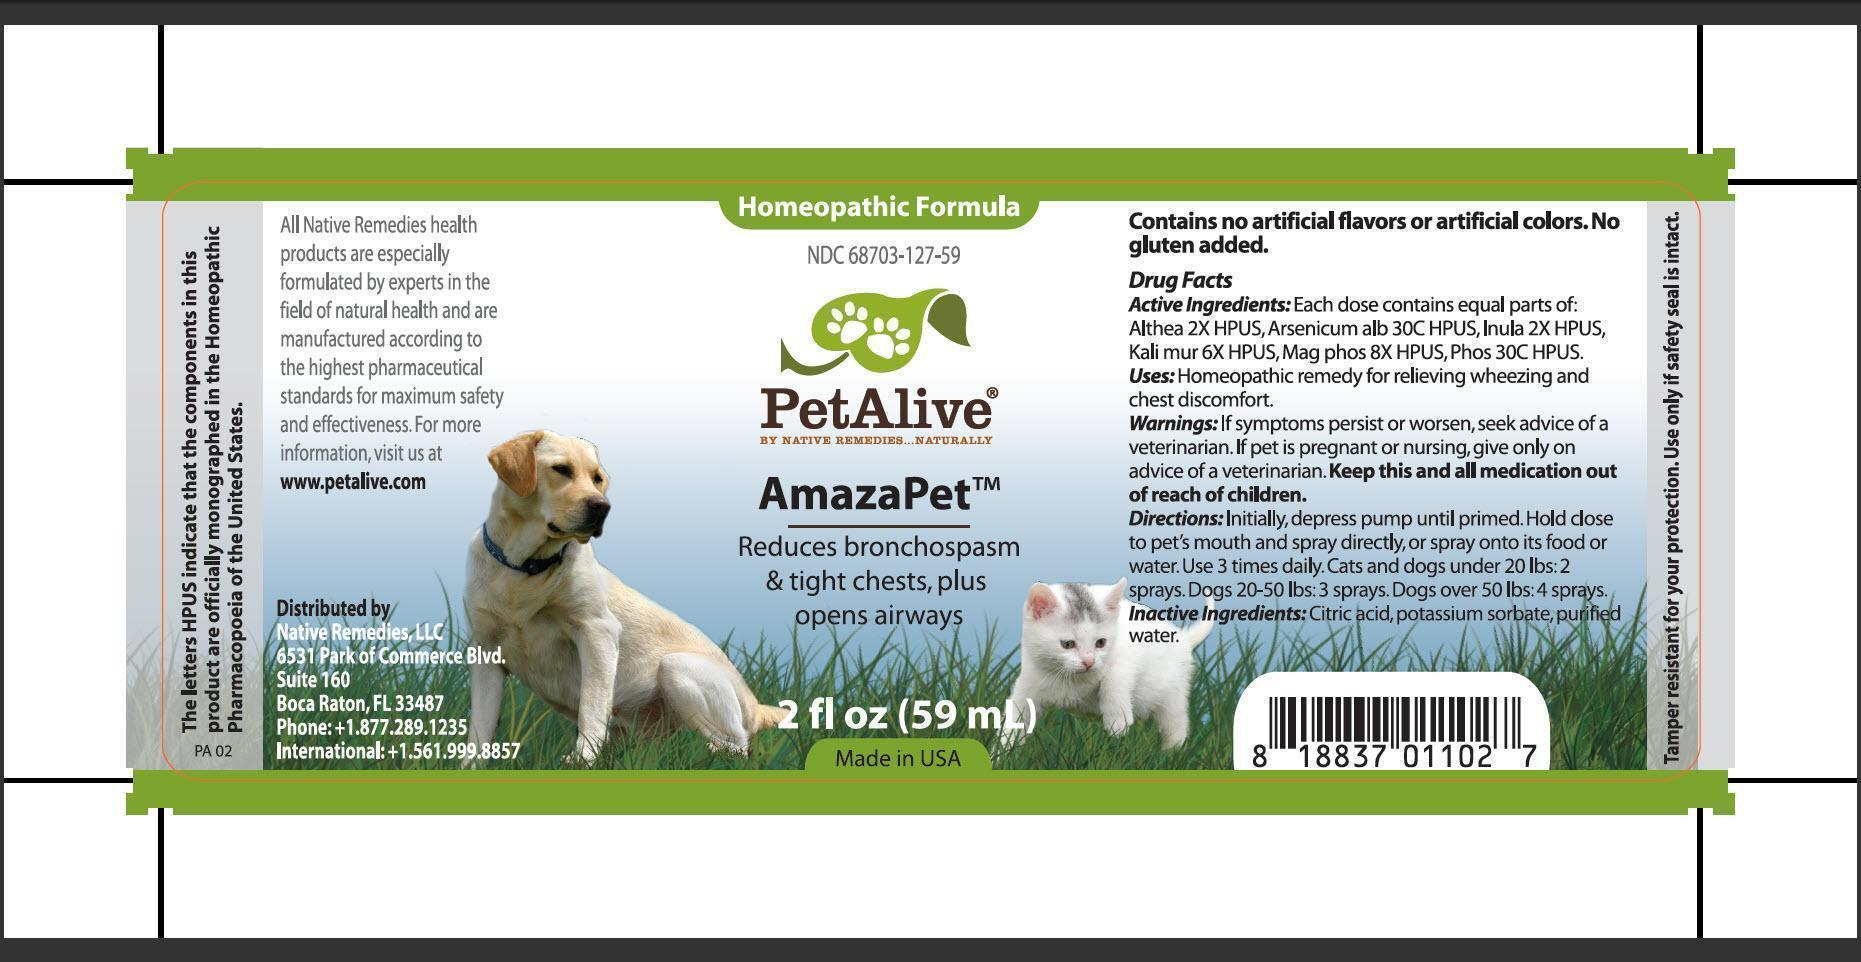 Petalive Amazapet (Althea, Arsenicum Alb, Inula, Kali Mur, Mag Phos, Phos) Spray [Native Remedies, Llc]